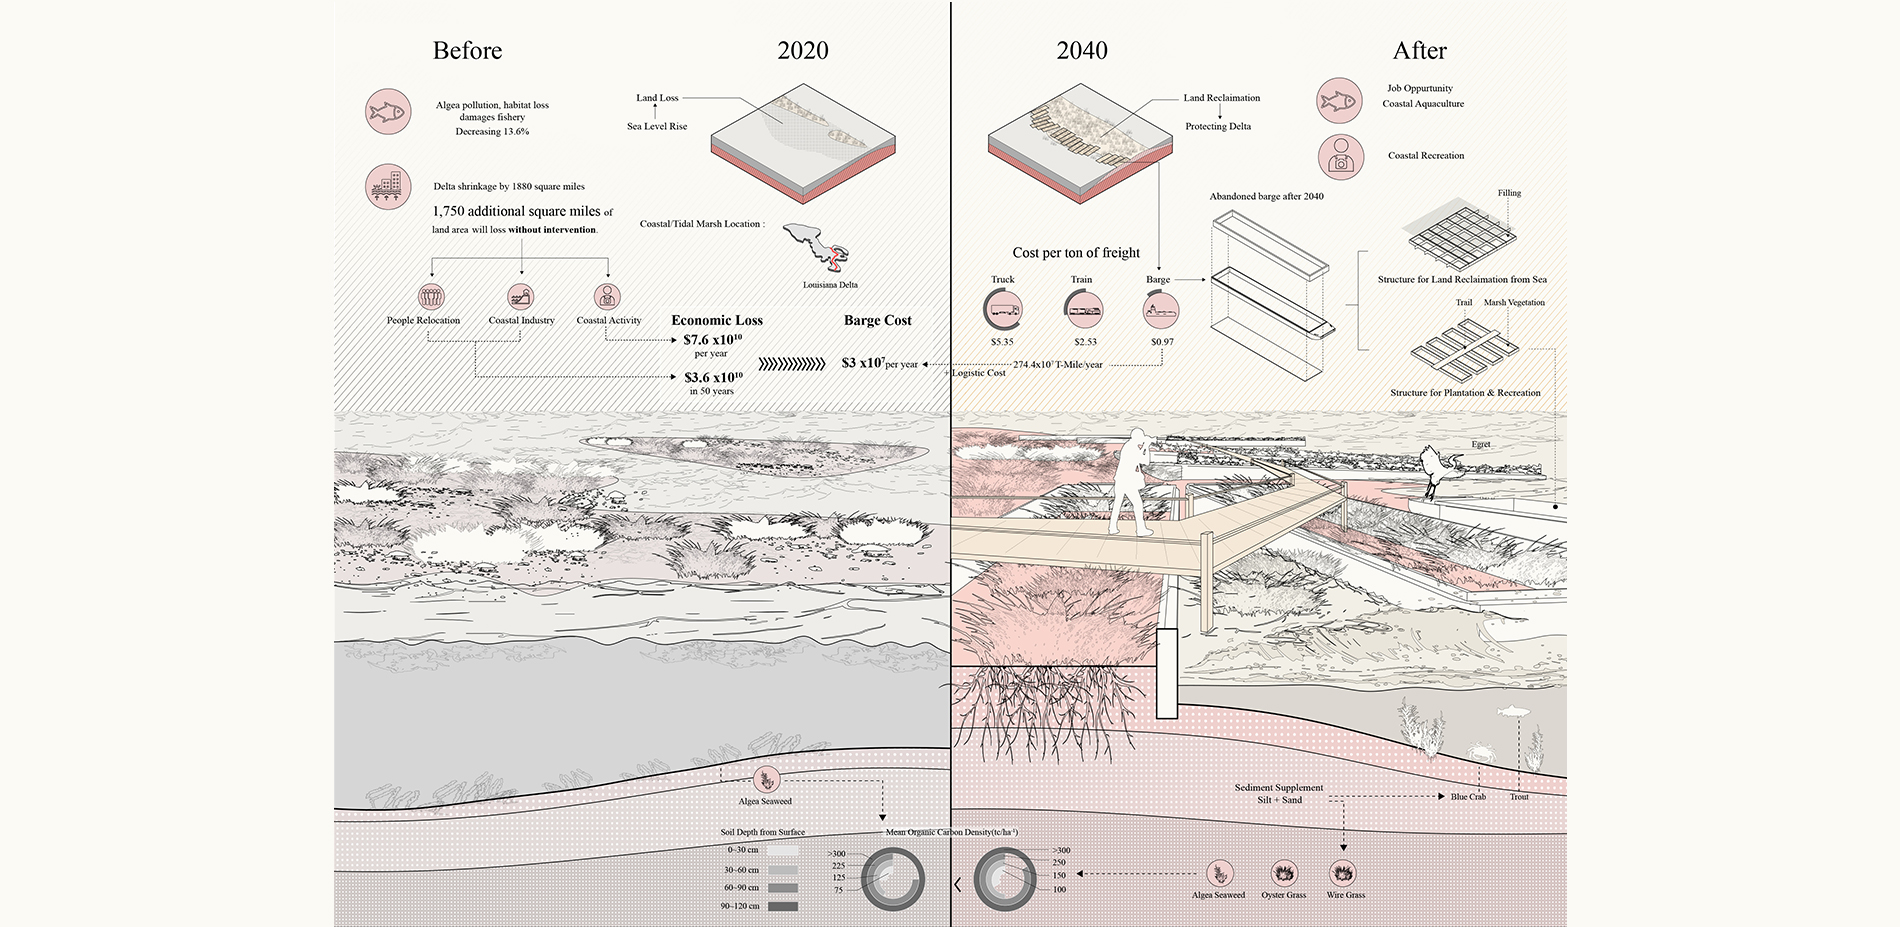 Before and after restoration of coastal marshes